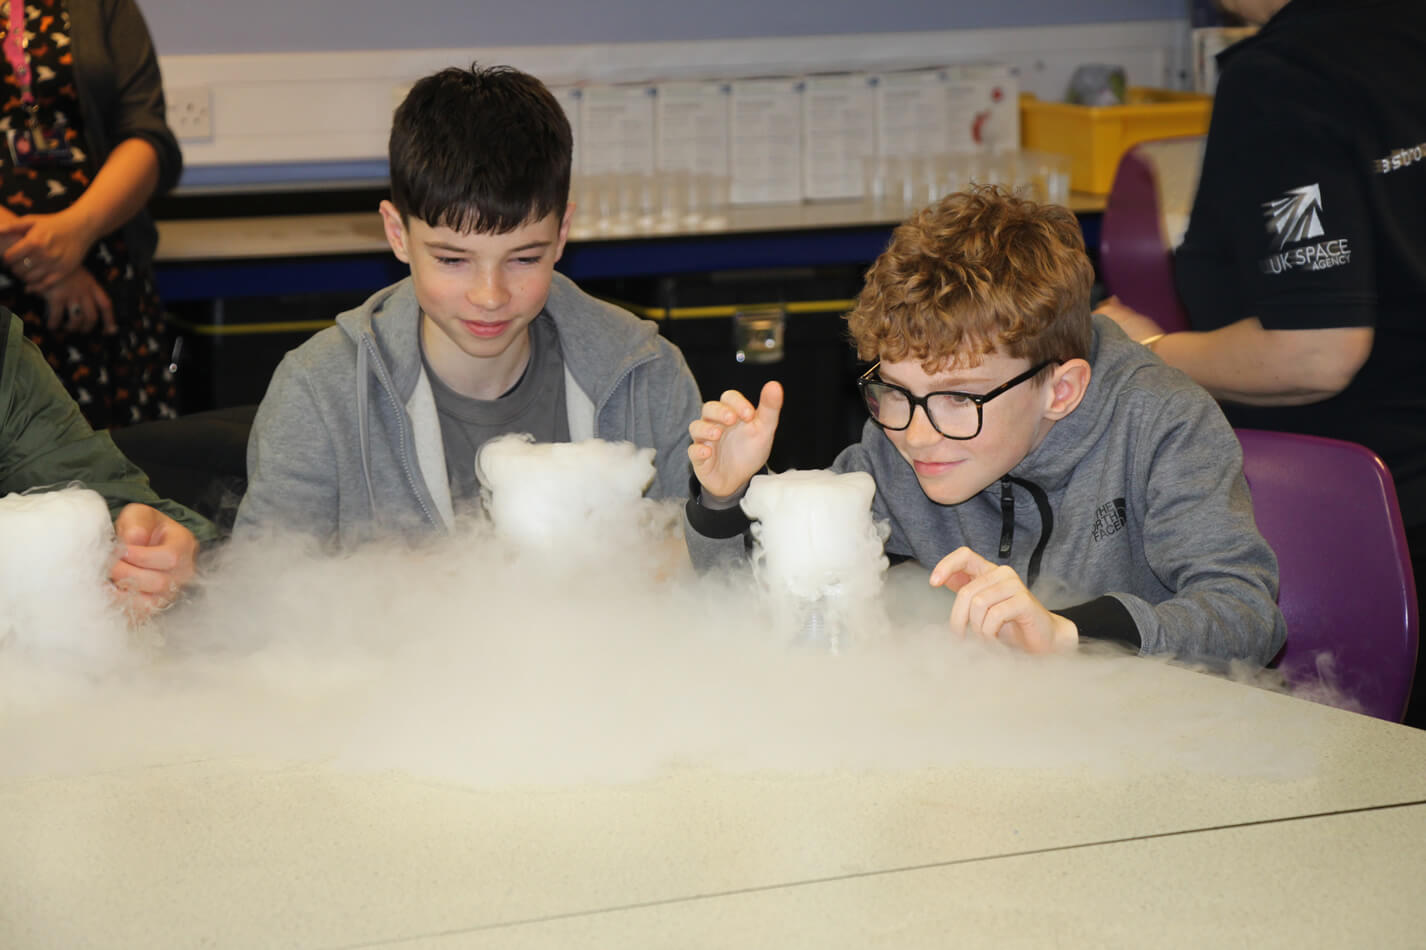 Two school boys doing science experiment.